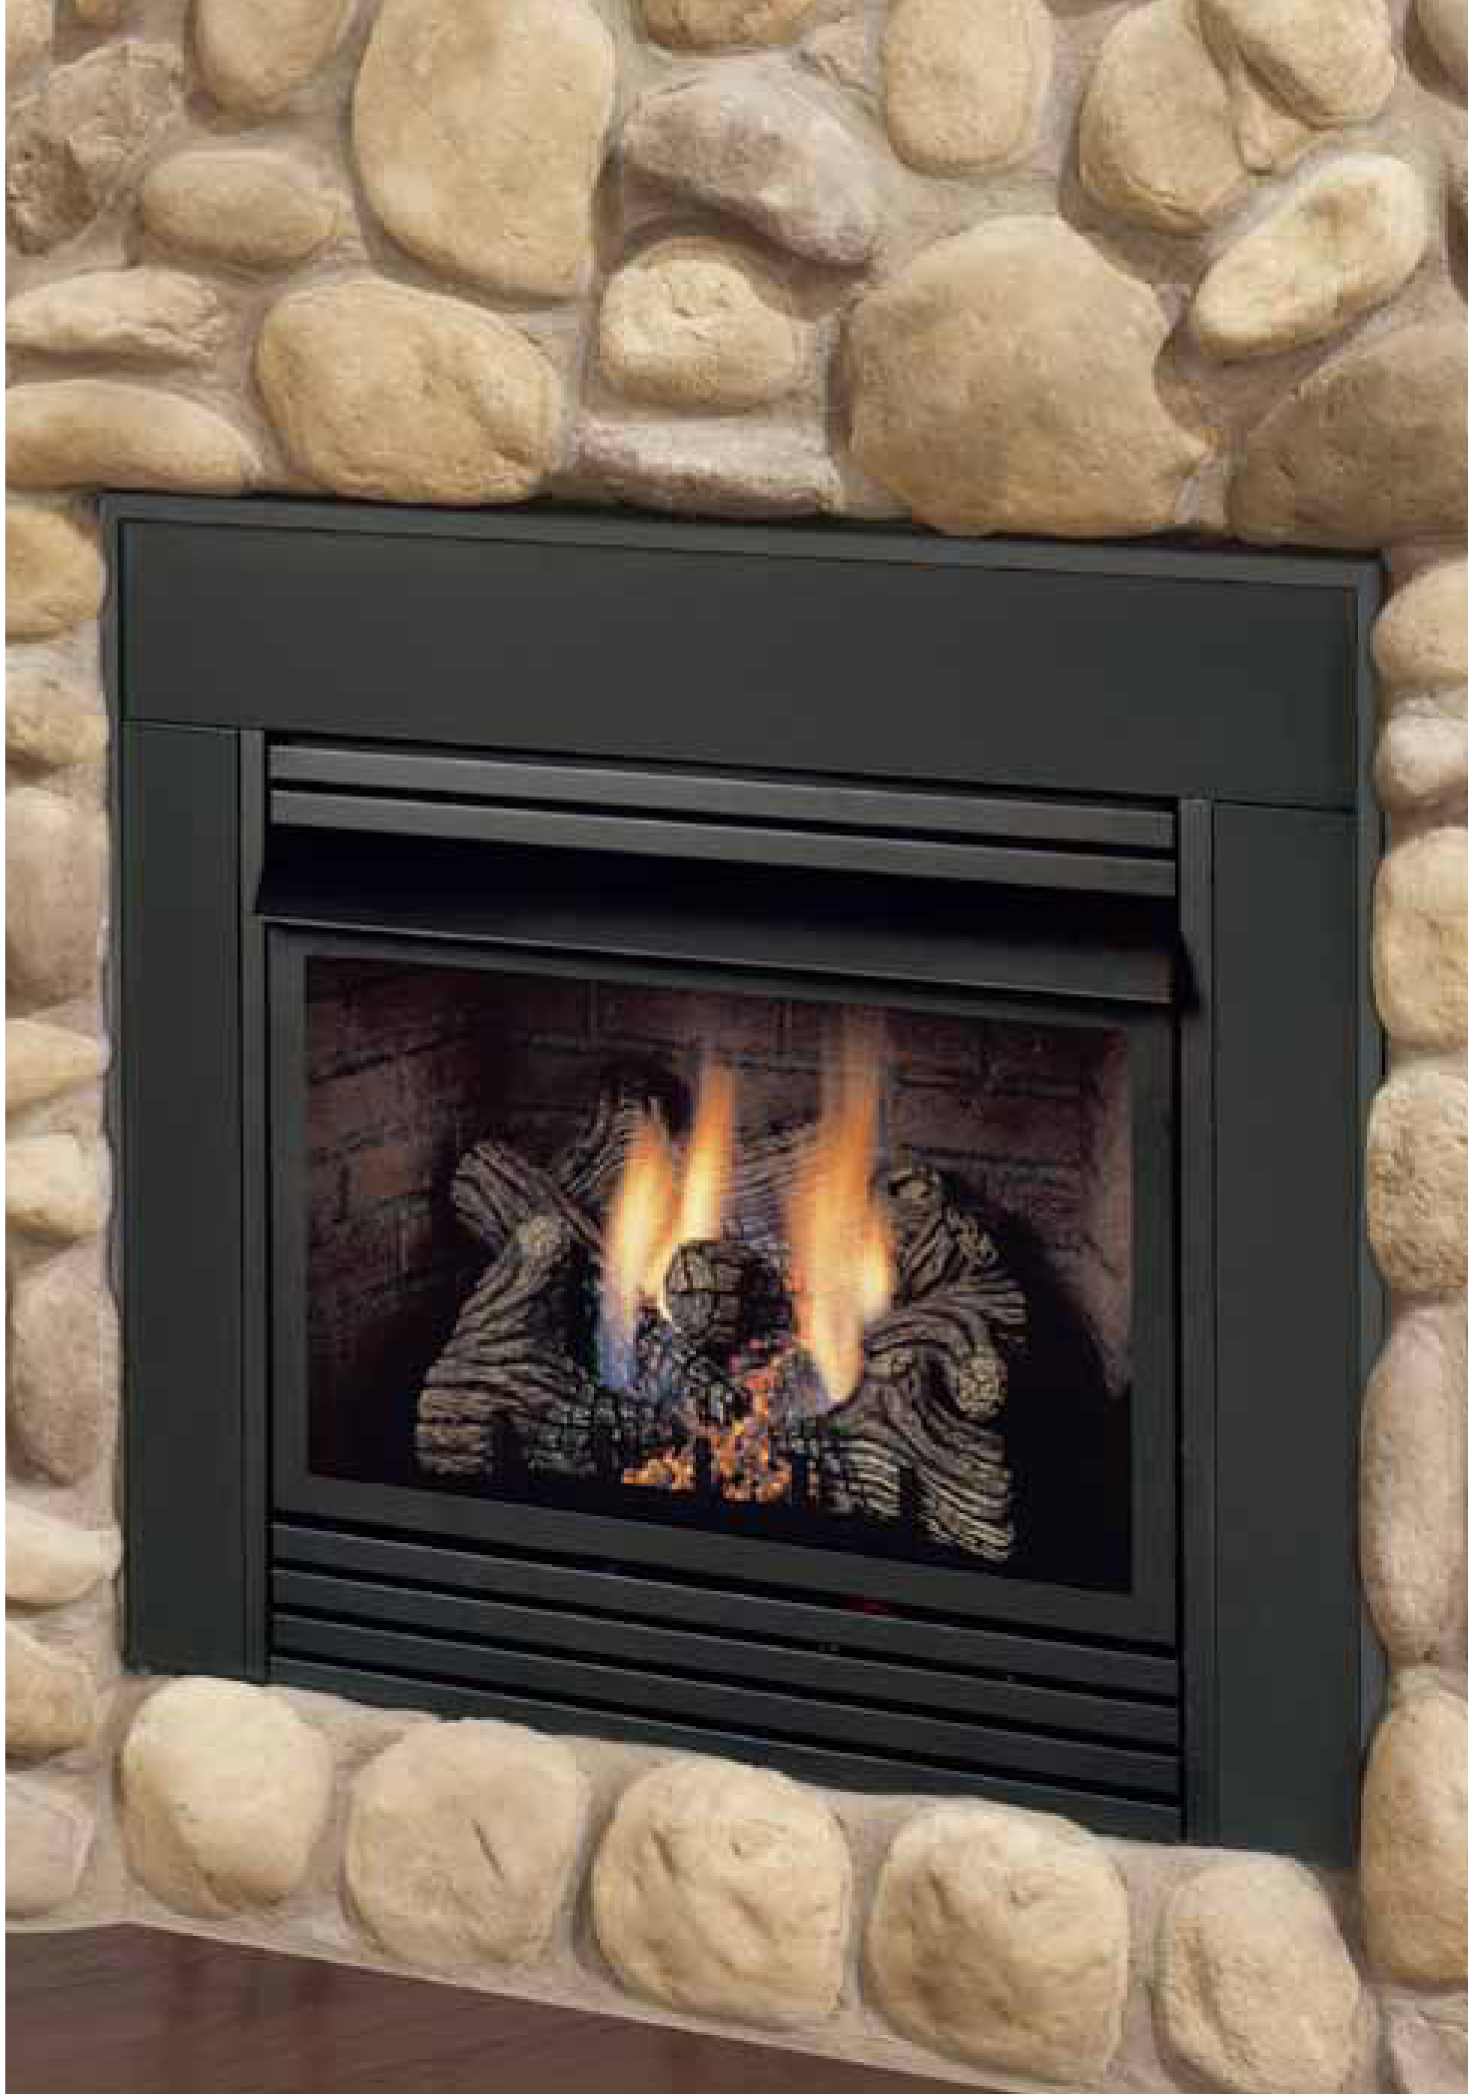 Recreational Warehouse  Ventless Logs Ventless Fireplaces Vent Free Fireplace Inserts Pool